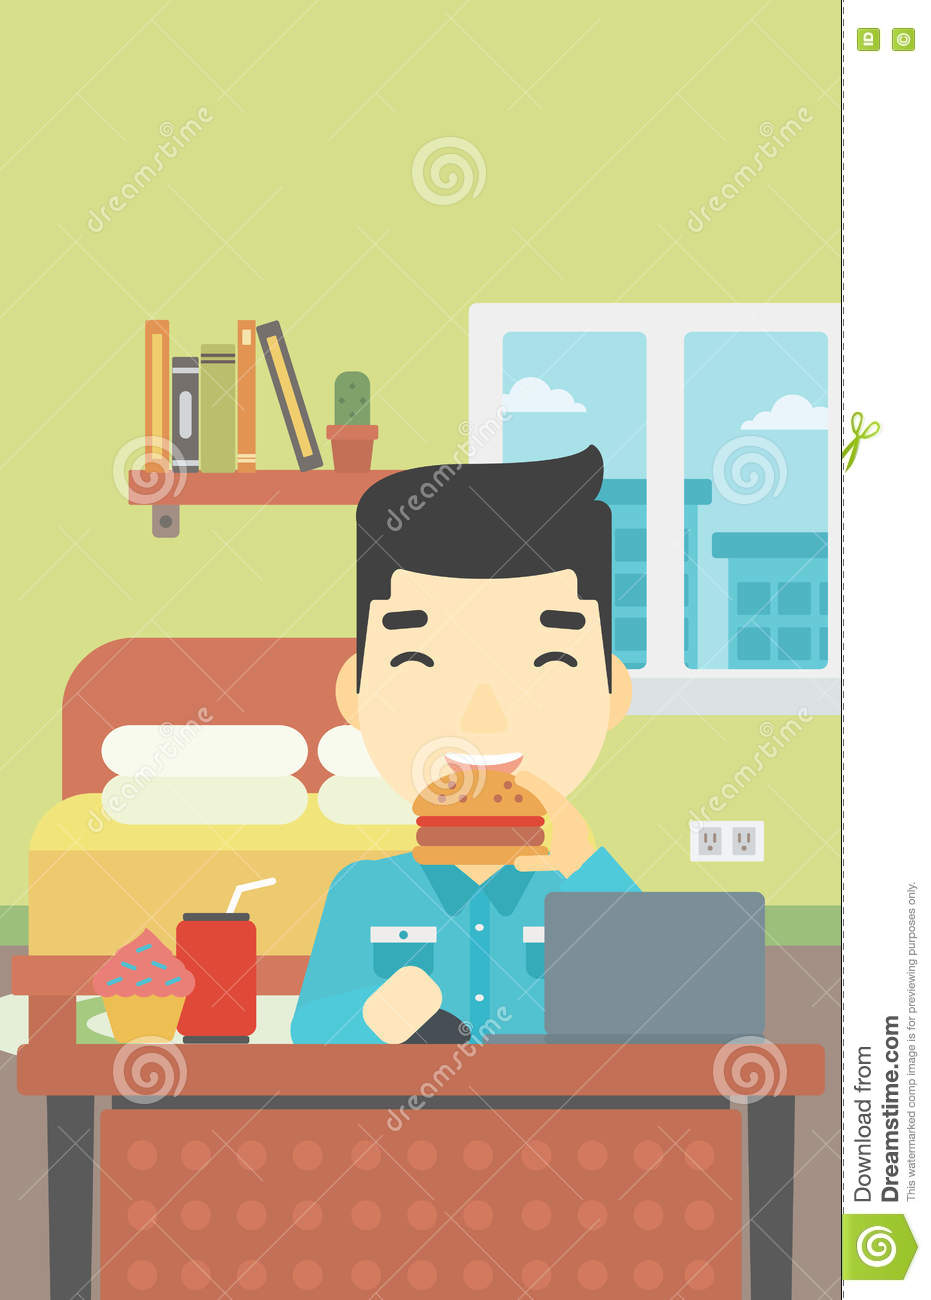 Man eating hamburger vector illustration stock vector image 74833014 - Food in the bedroom ideas ...